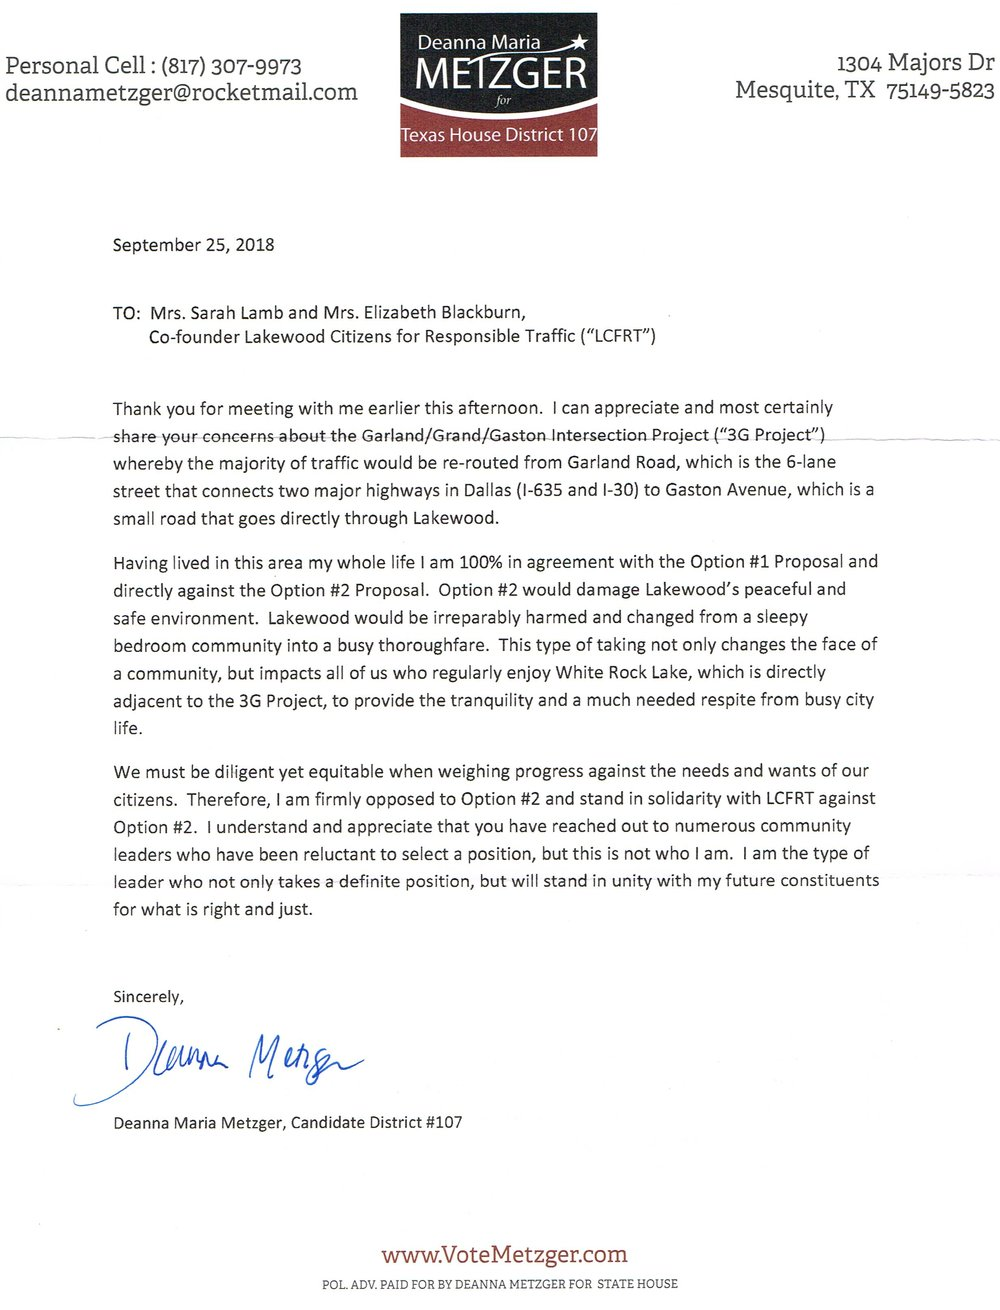 Deanna Maria Metger Letter of Support